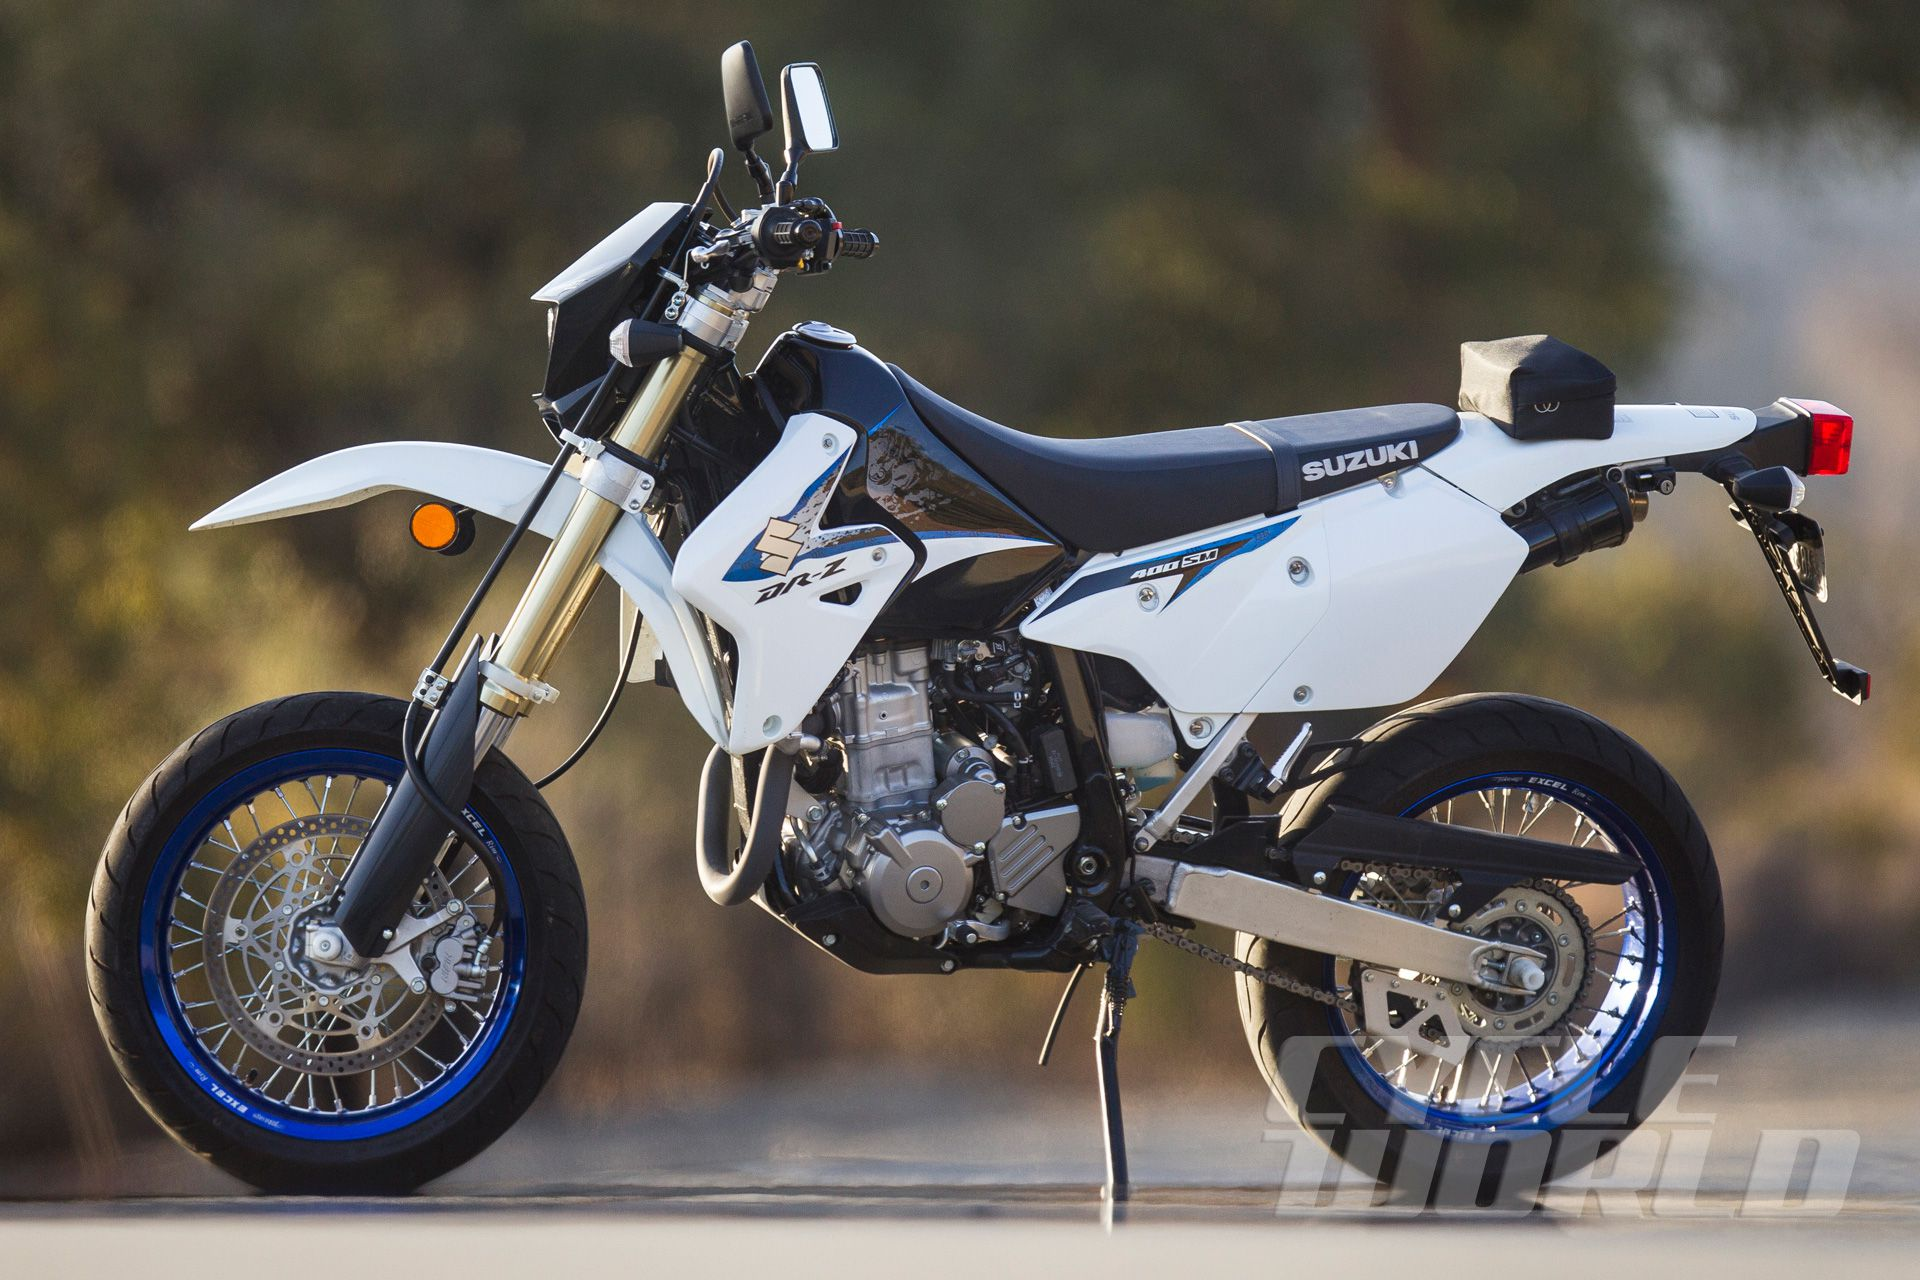 DR-Z400SM | Cycle World